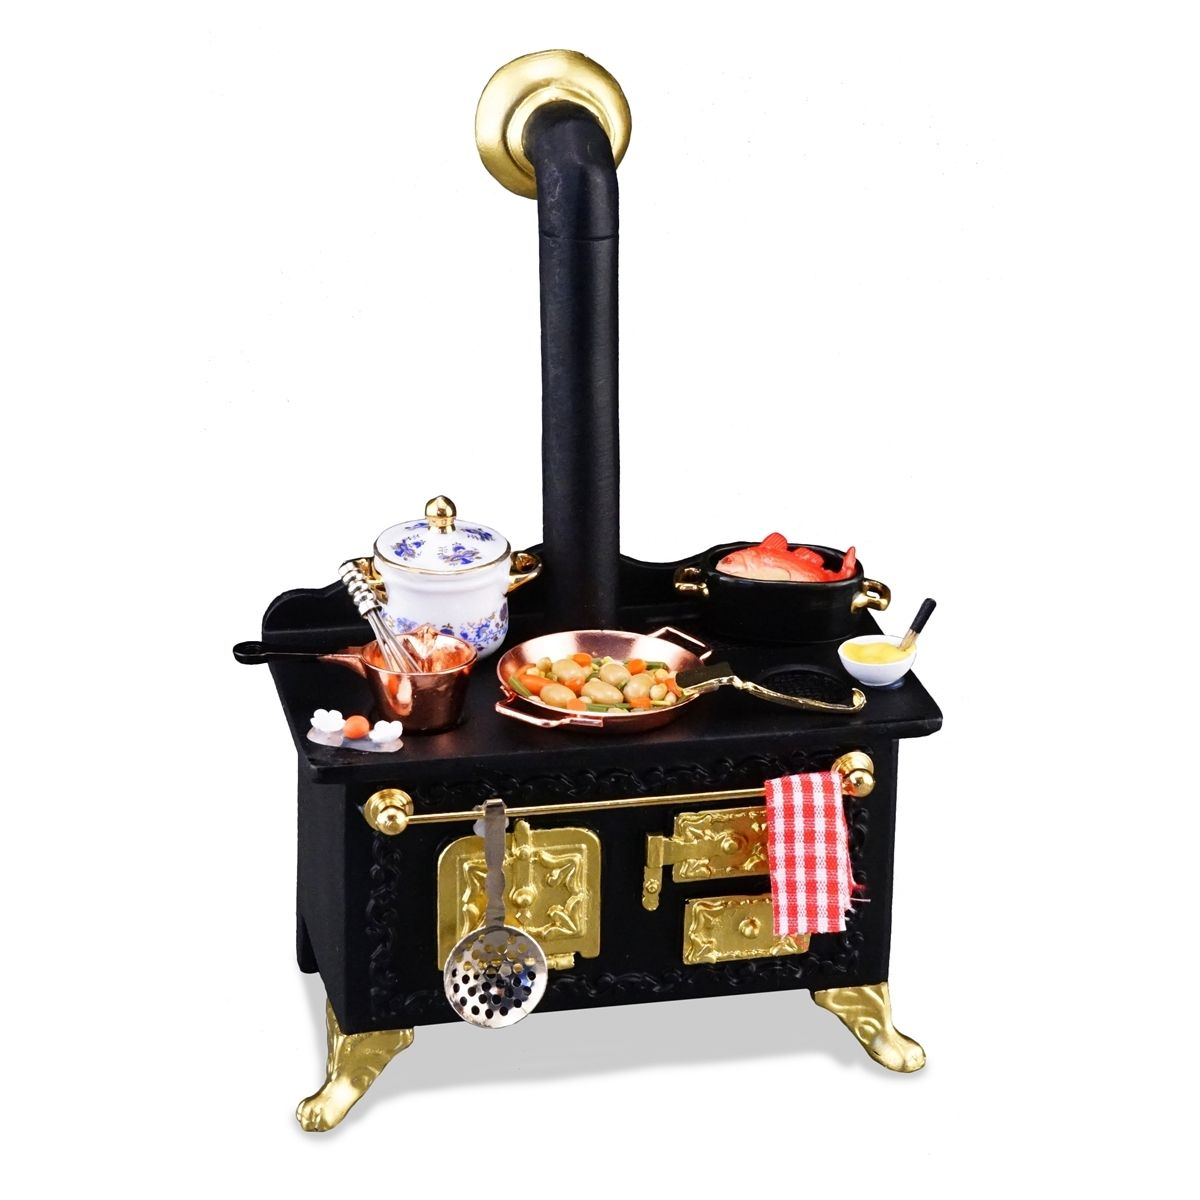 reutter miniaturen k chenherd mit deko 1830 3 puppenstube herd ofen backofen ebay. Black Bedroom Furniture Sets. Home Design Ideas